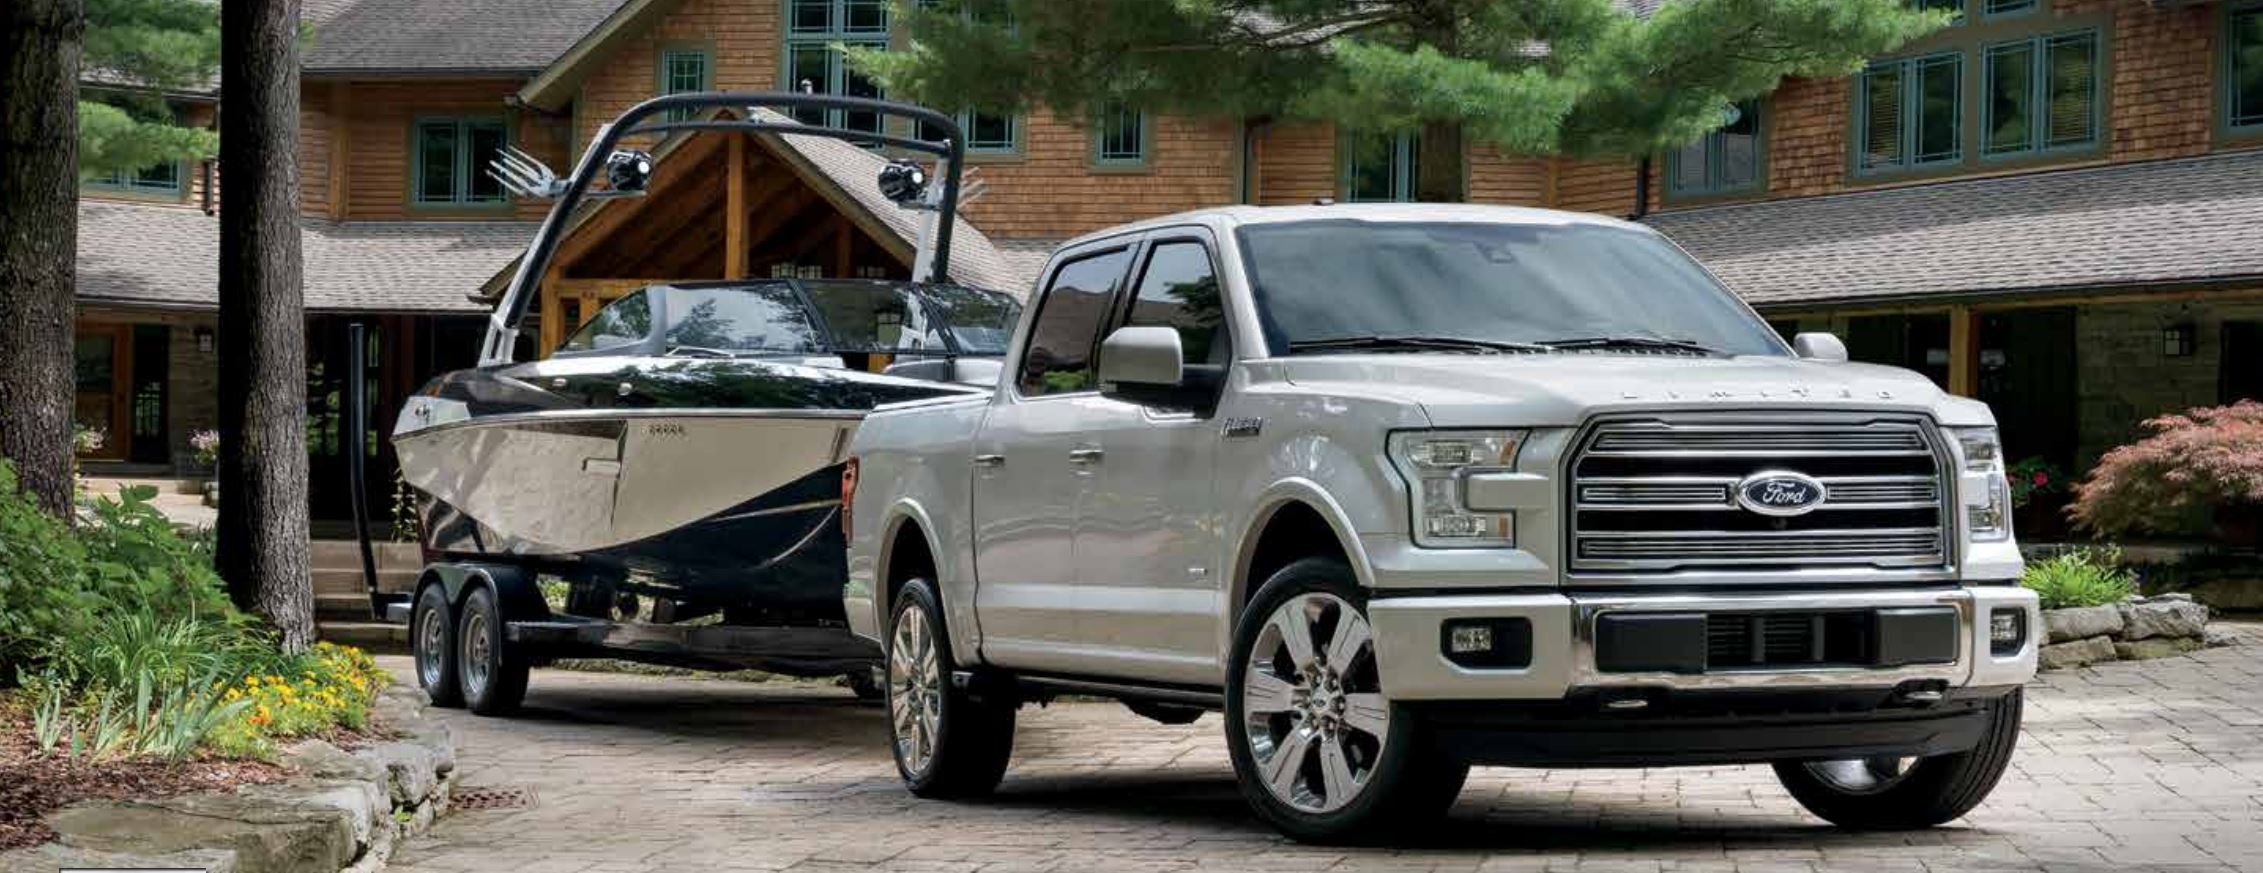 ford f 150 towing capacity ottawa